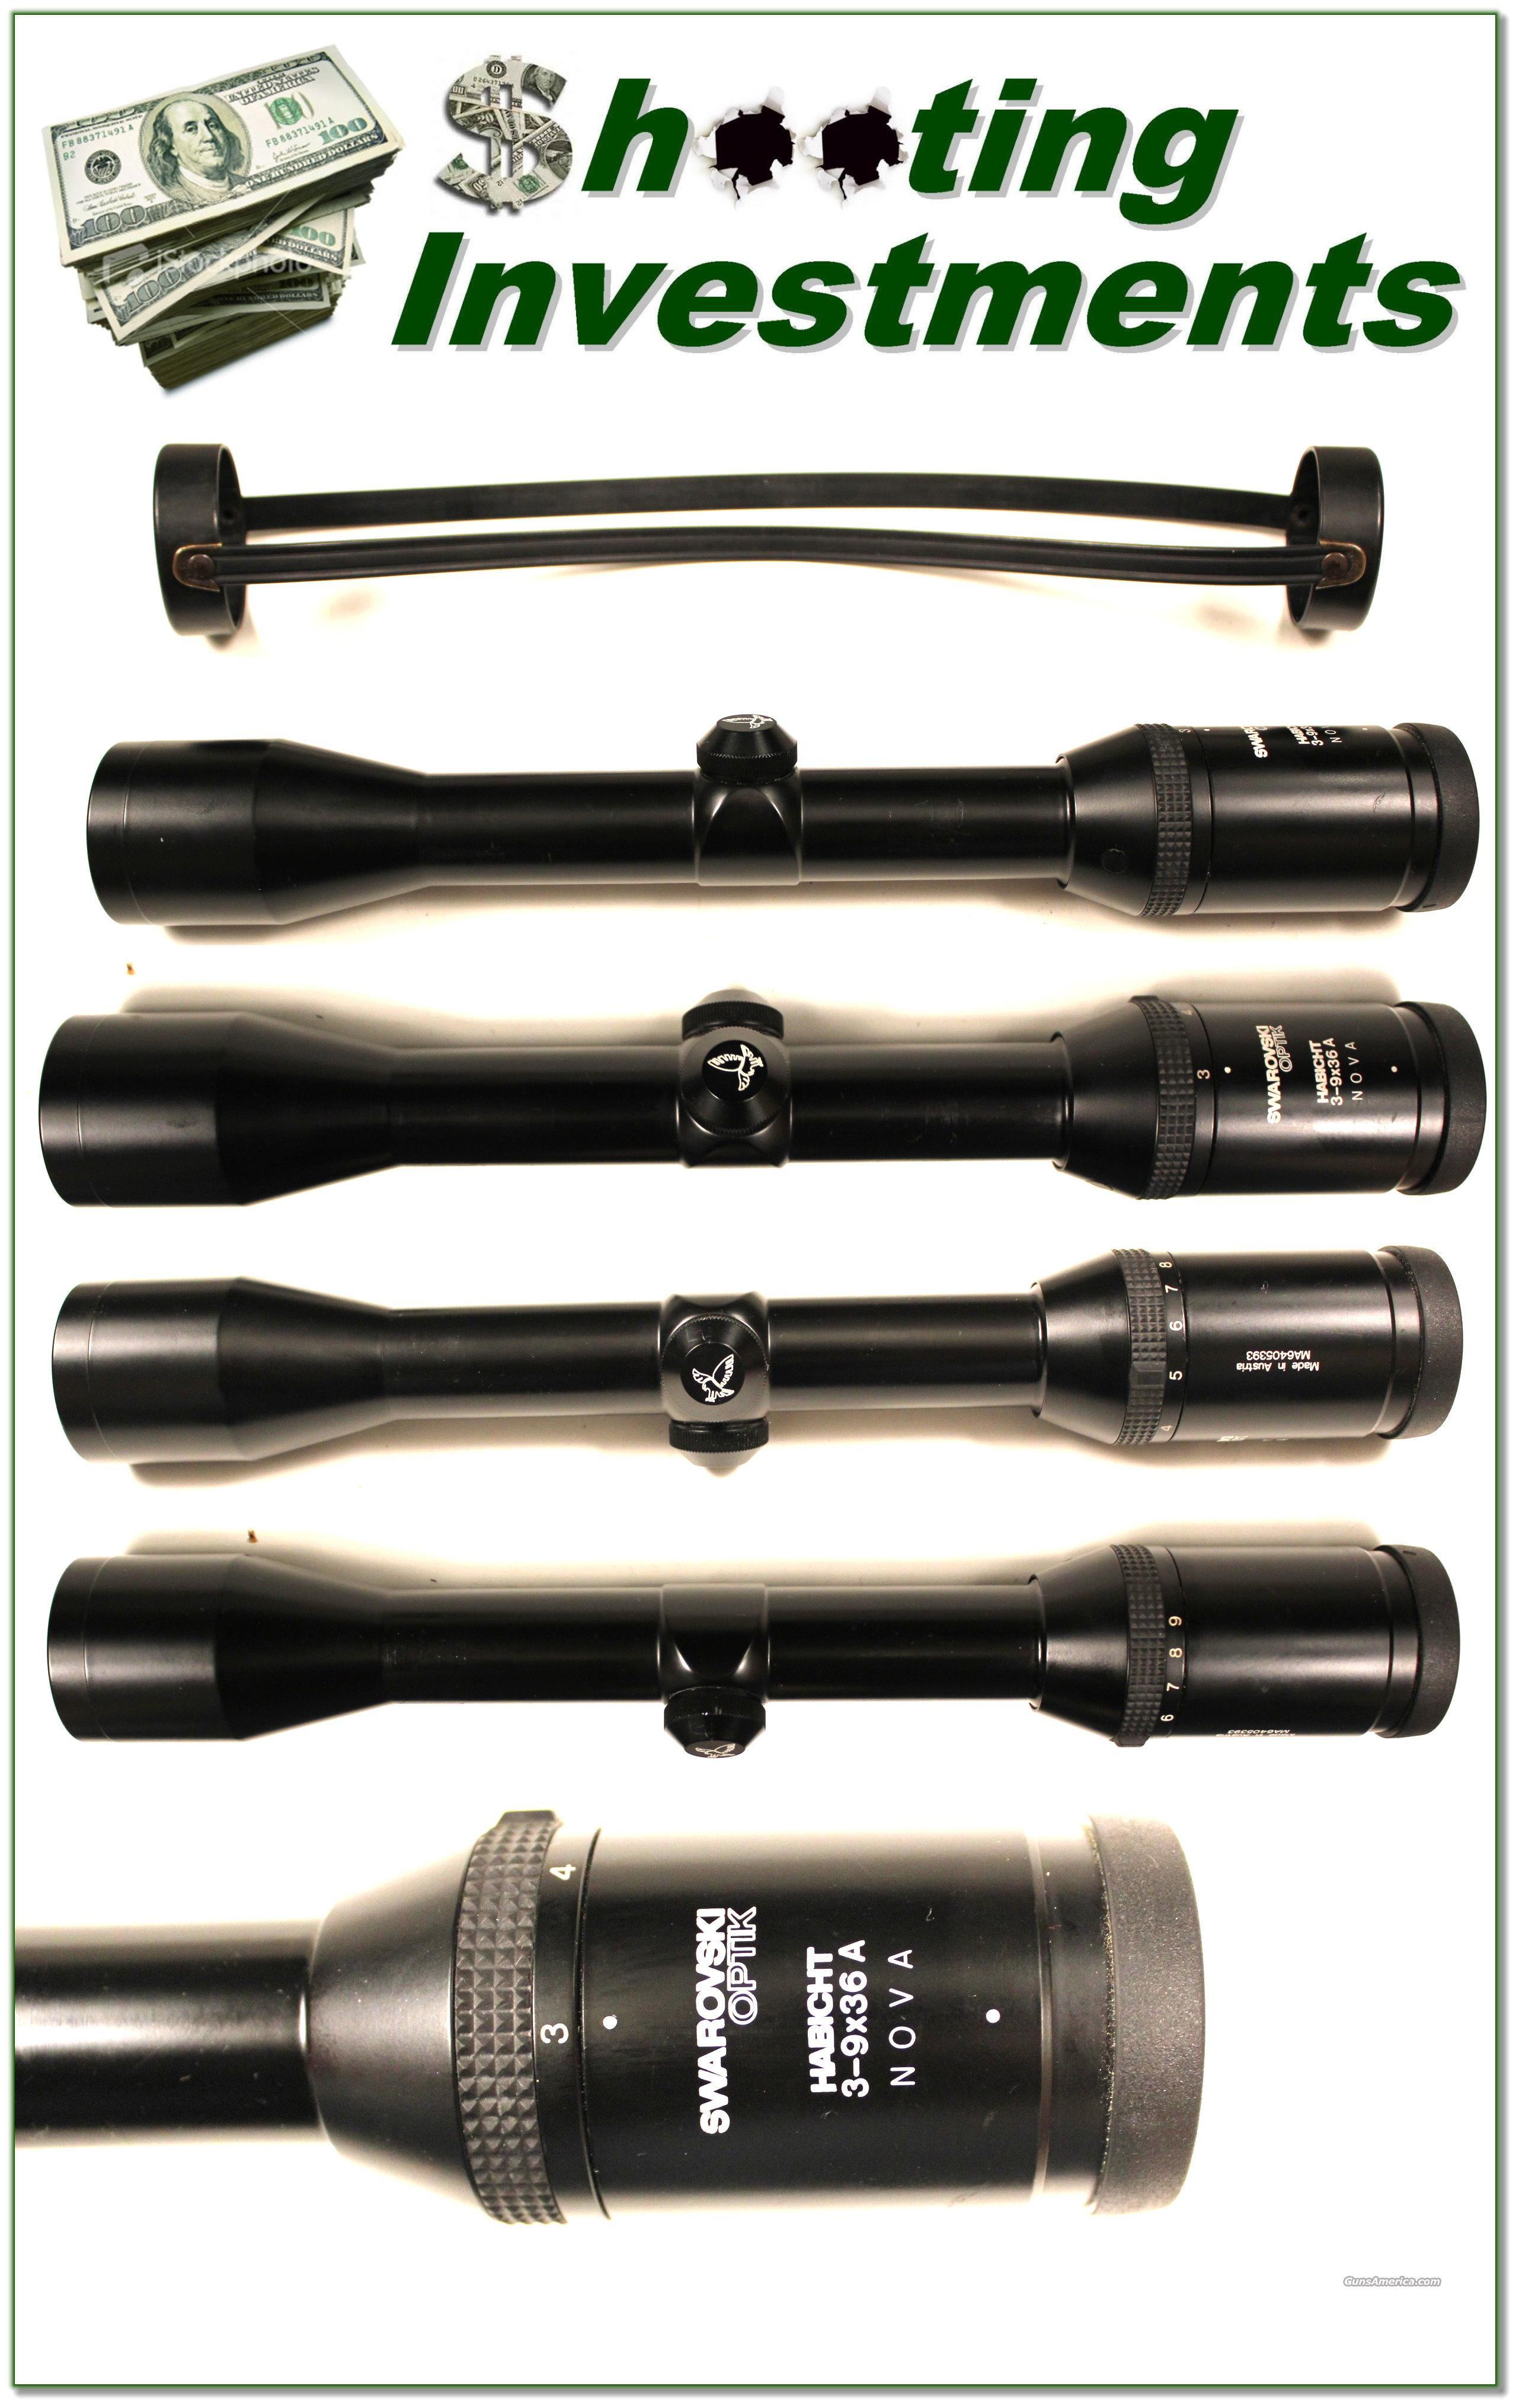 Swarovski Habicht Nova Rifle Scope 3-9 X 36  Non-Guns > Scopes/Mounts/Rings & Optics > Rifle Scopes > Variable Focal Length